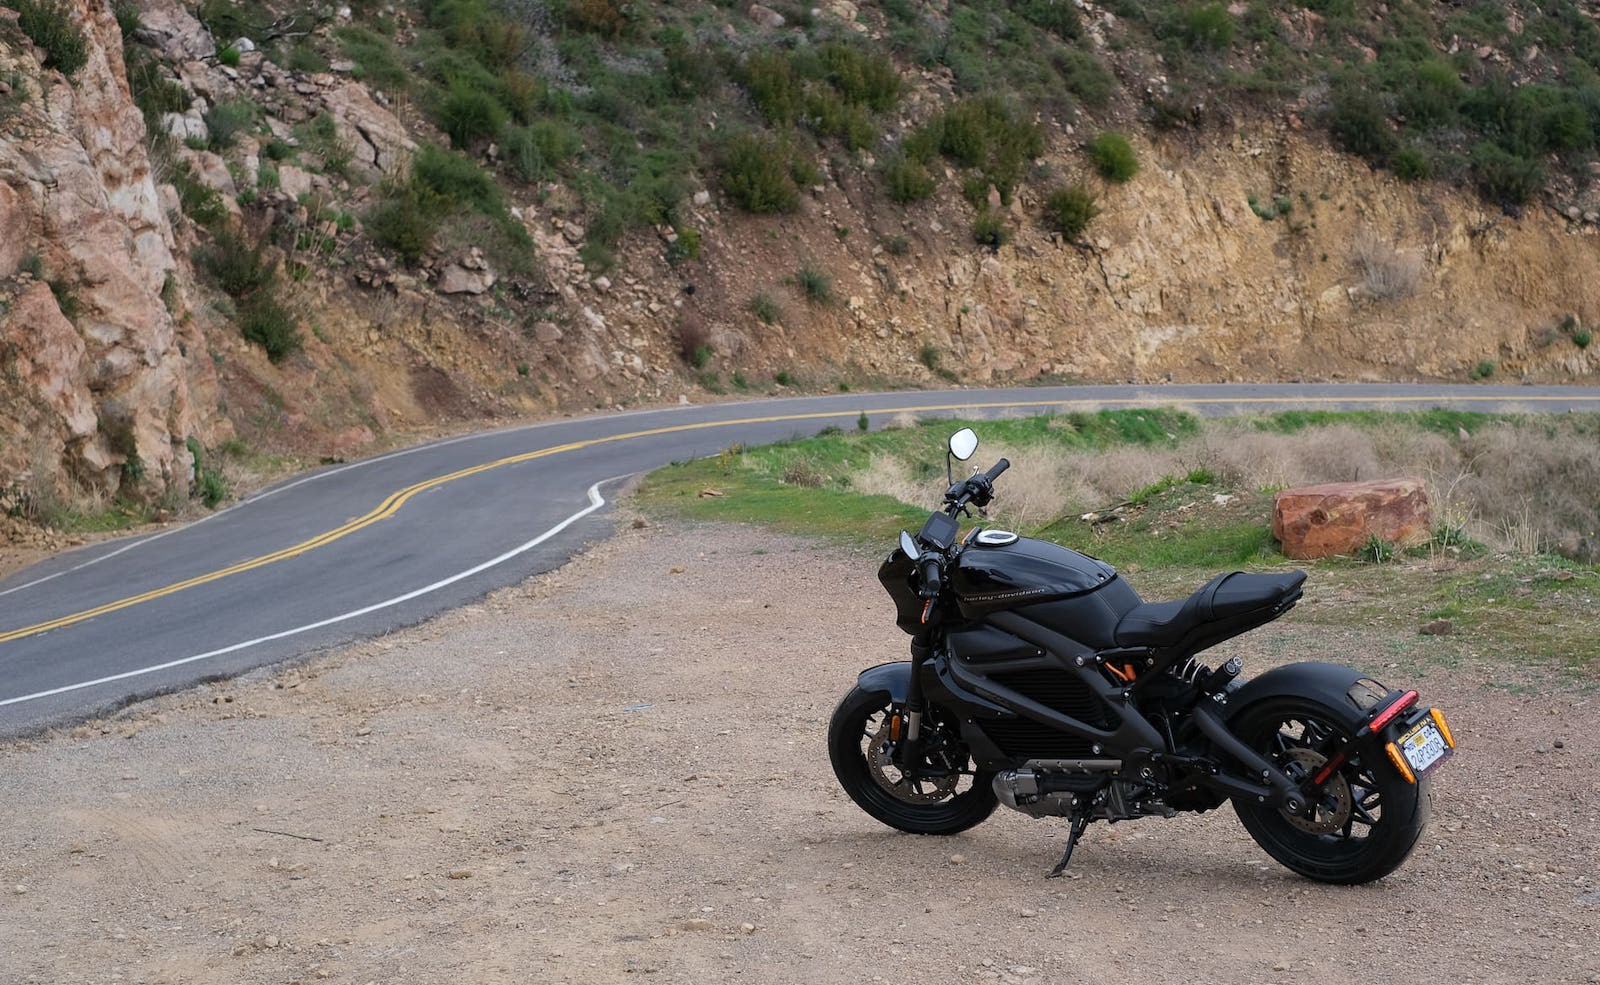 The Harley Davidson LiveWire I rented on Twisted Road